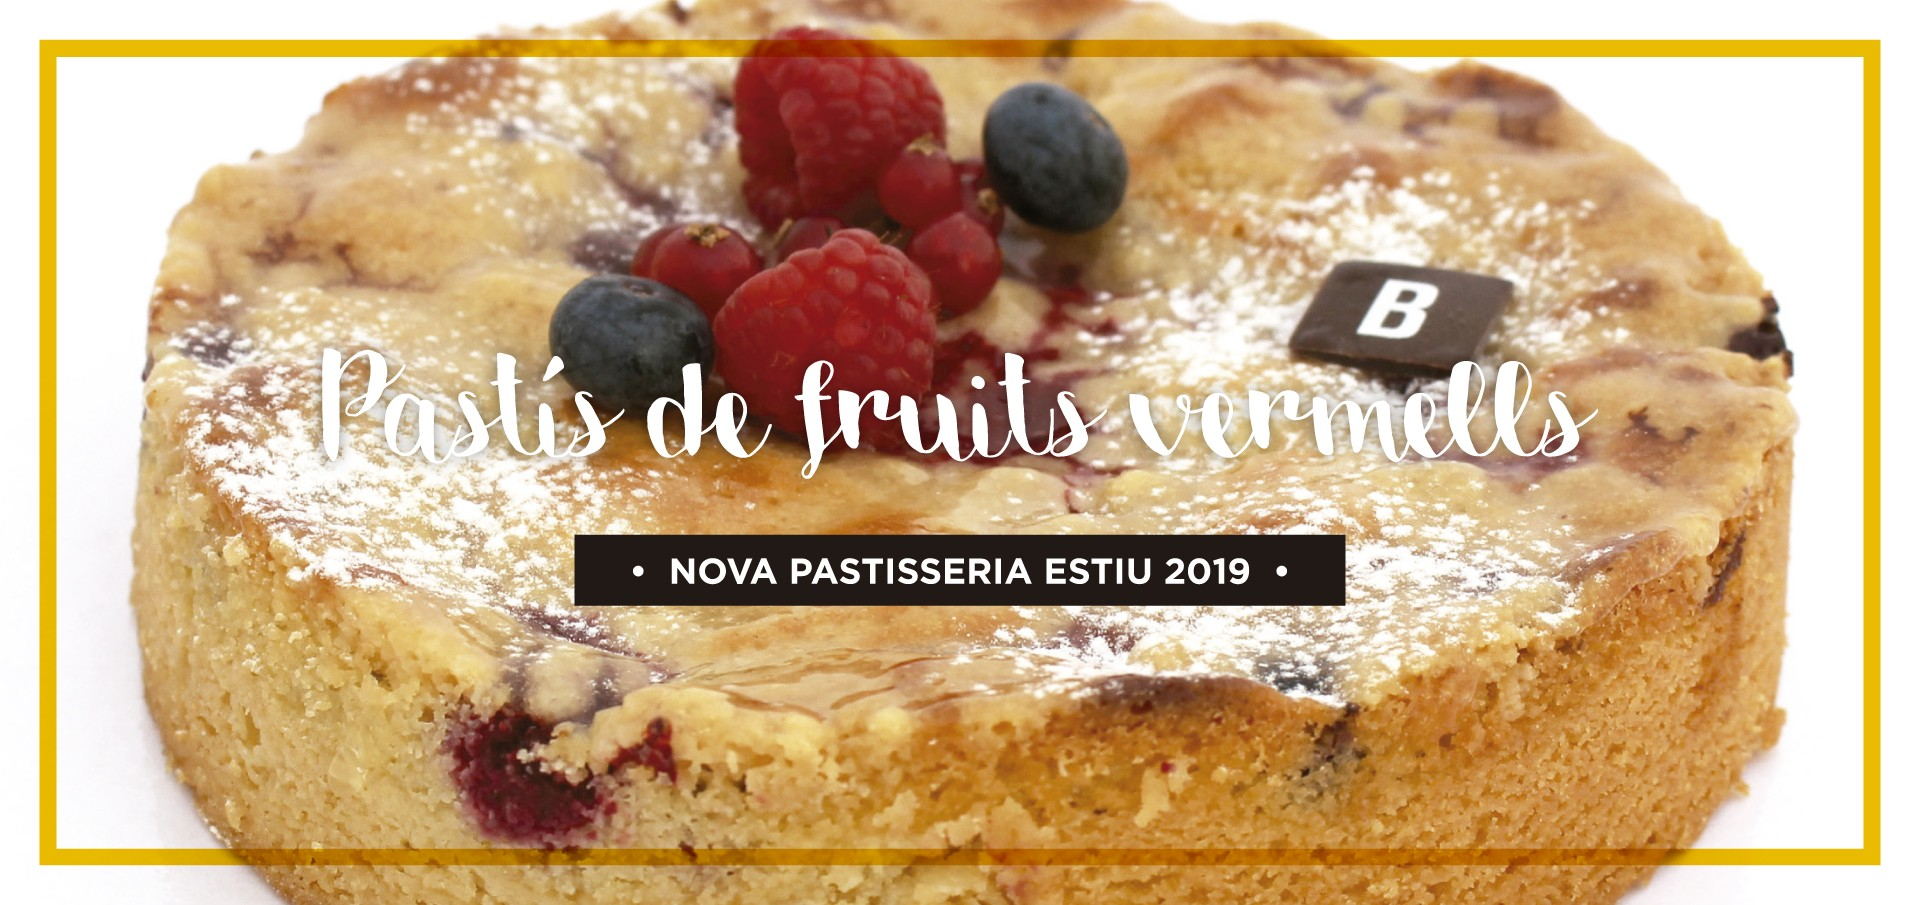 Pastís de fruits vermells